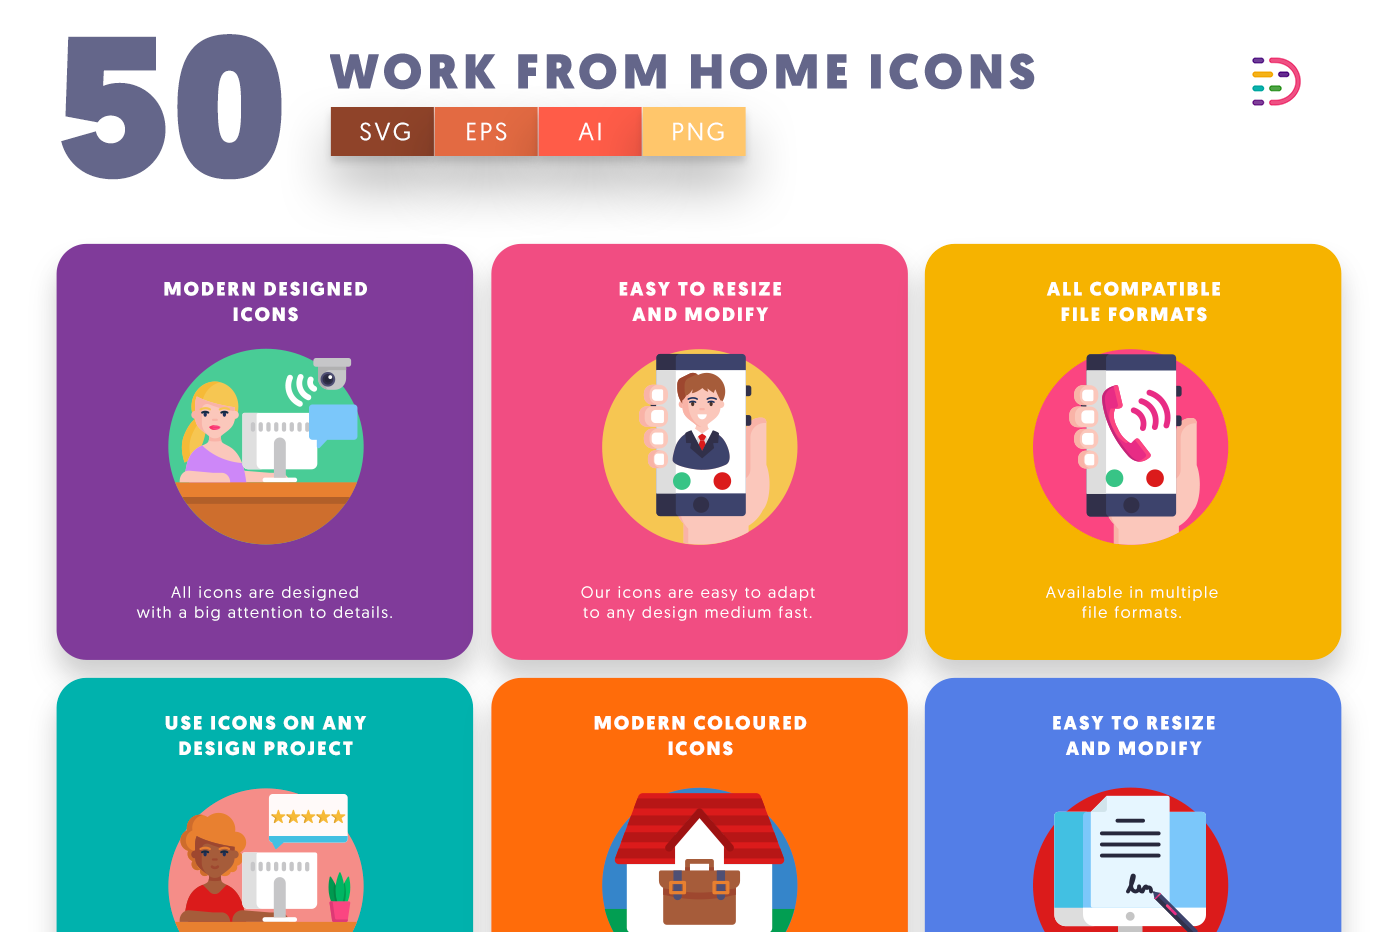 50 Work from Home Icons with colored backgrounds